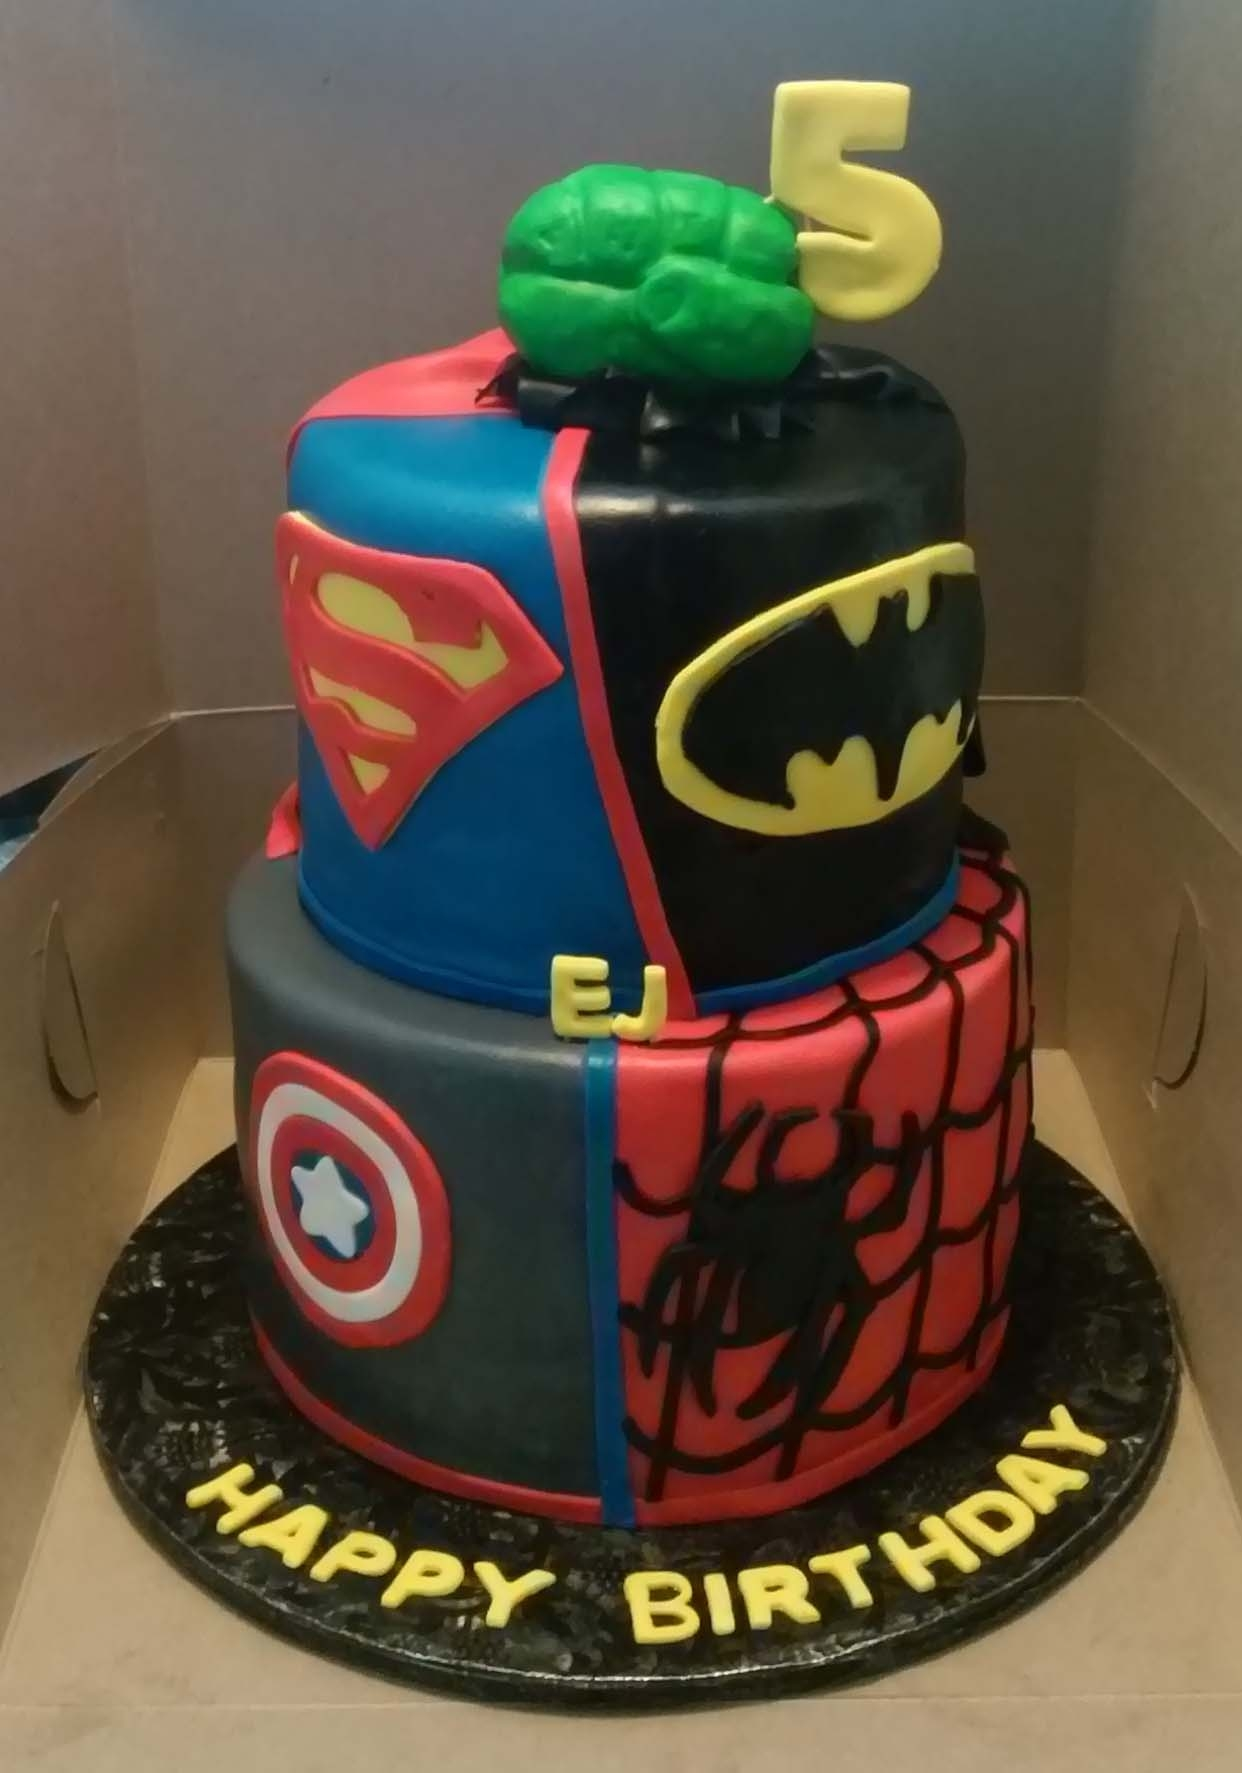 Tier Birthday Cake For A Man